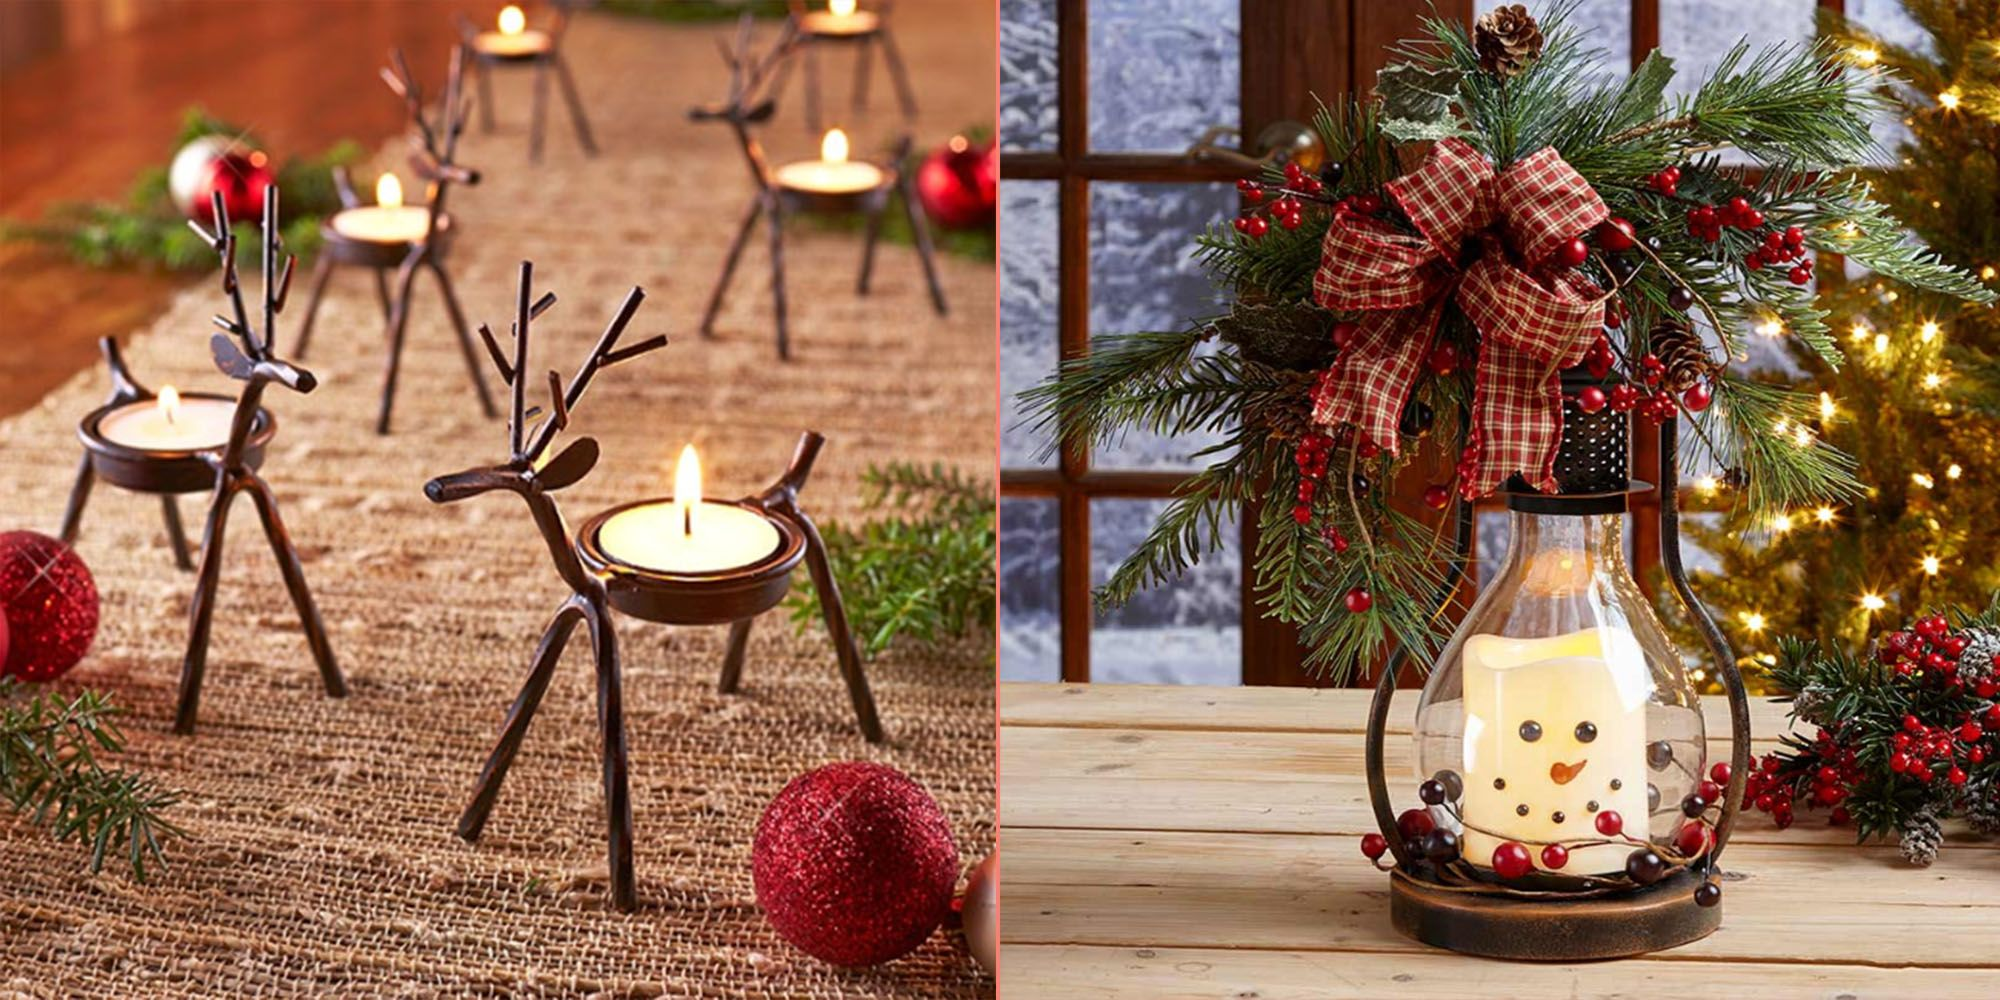 32 Christmas Table Decorations & Centerpieces Christmas